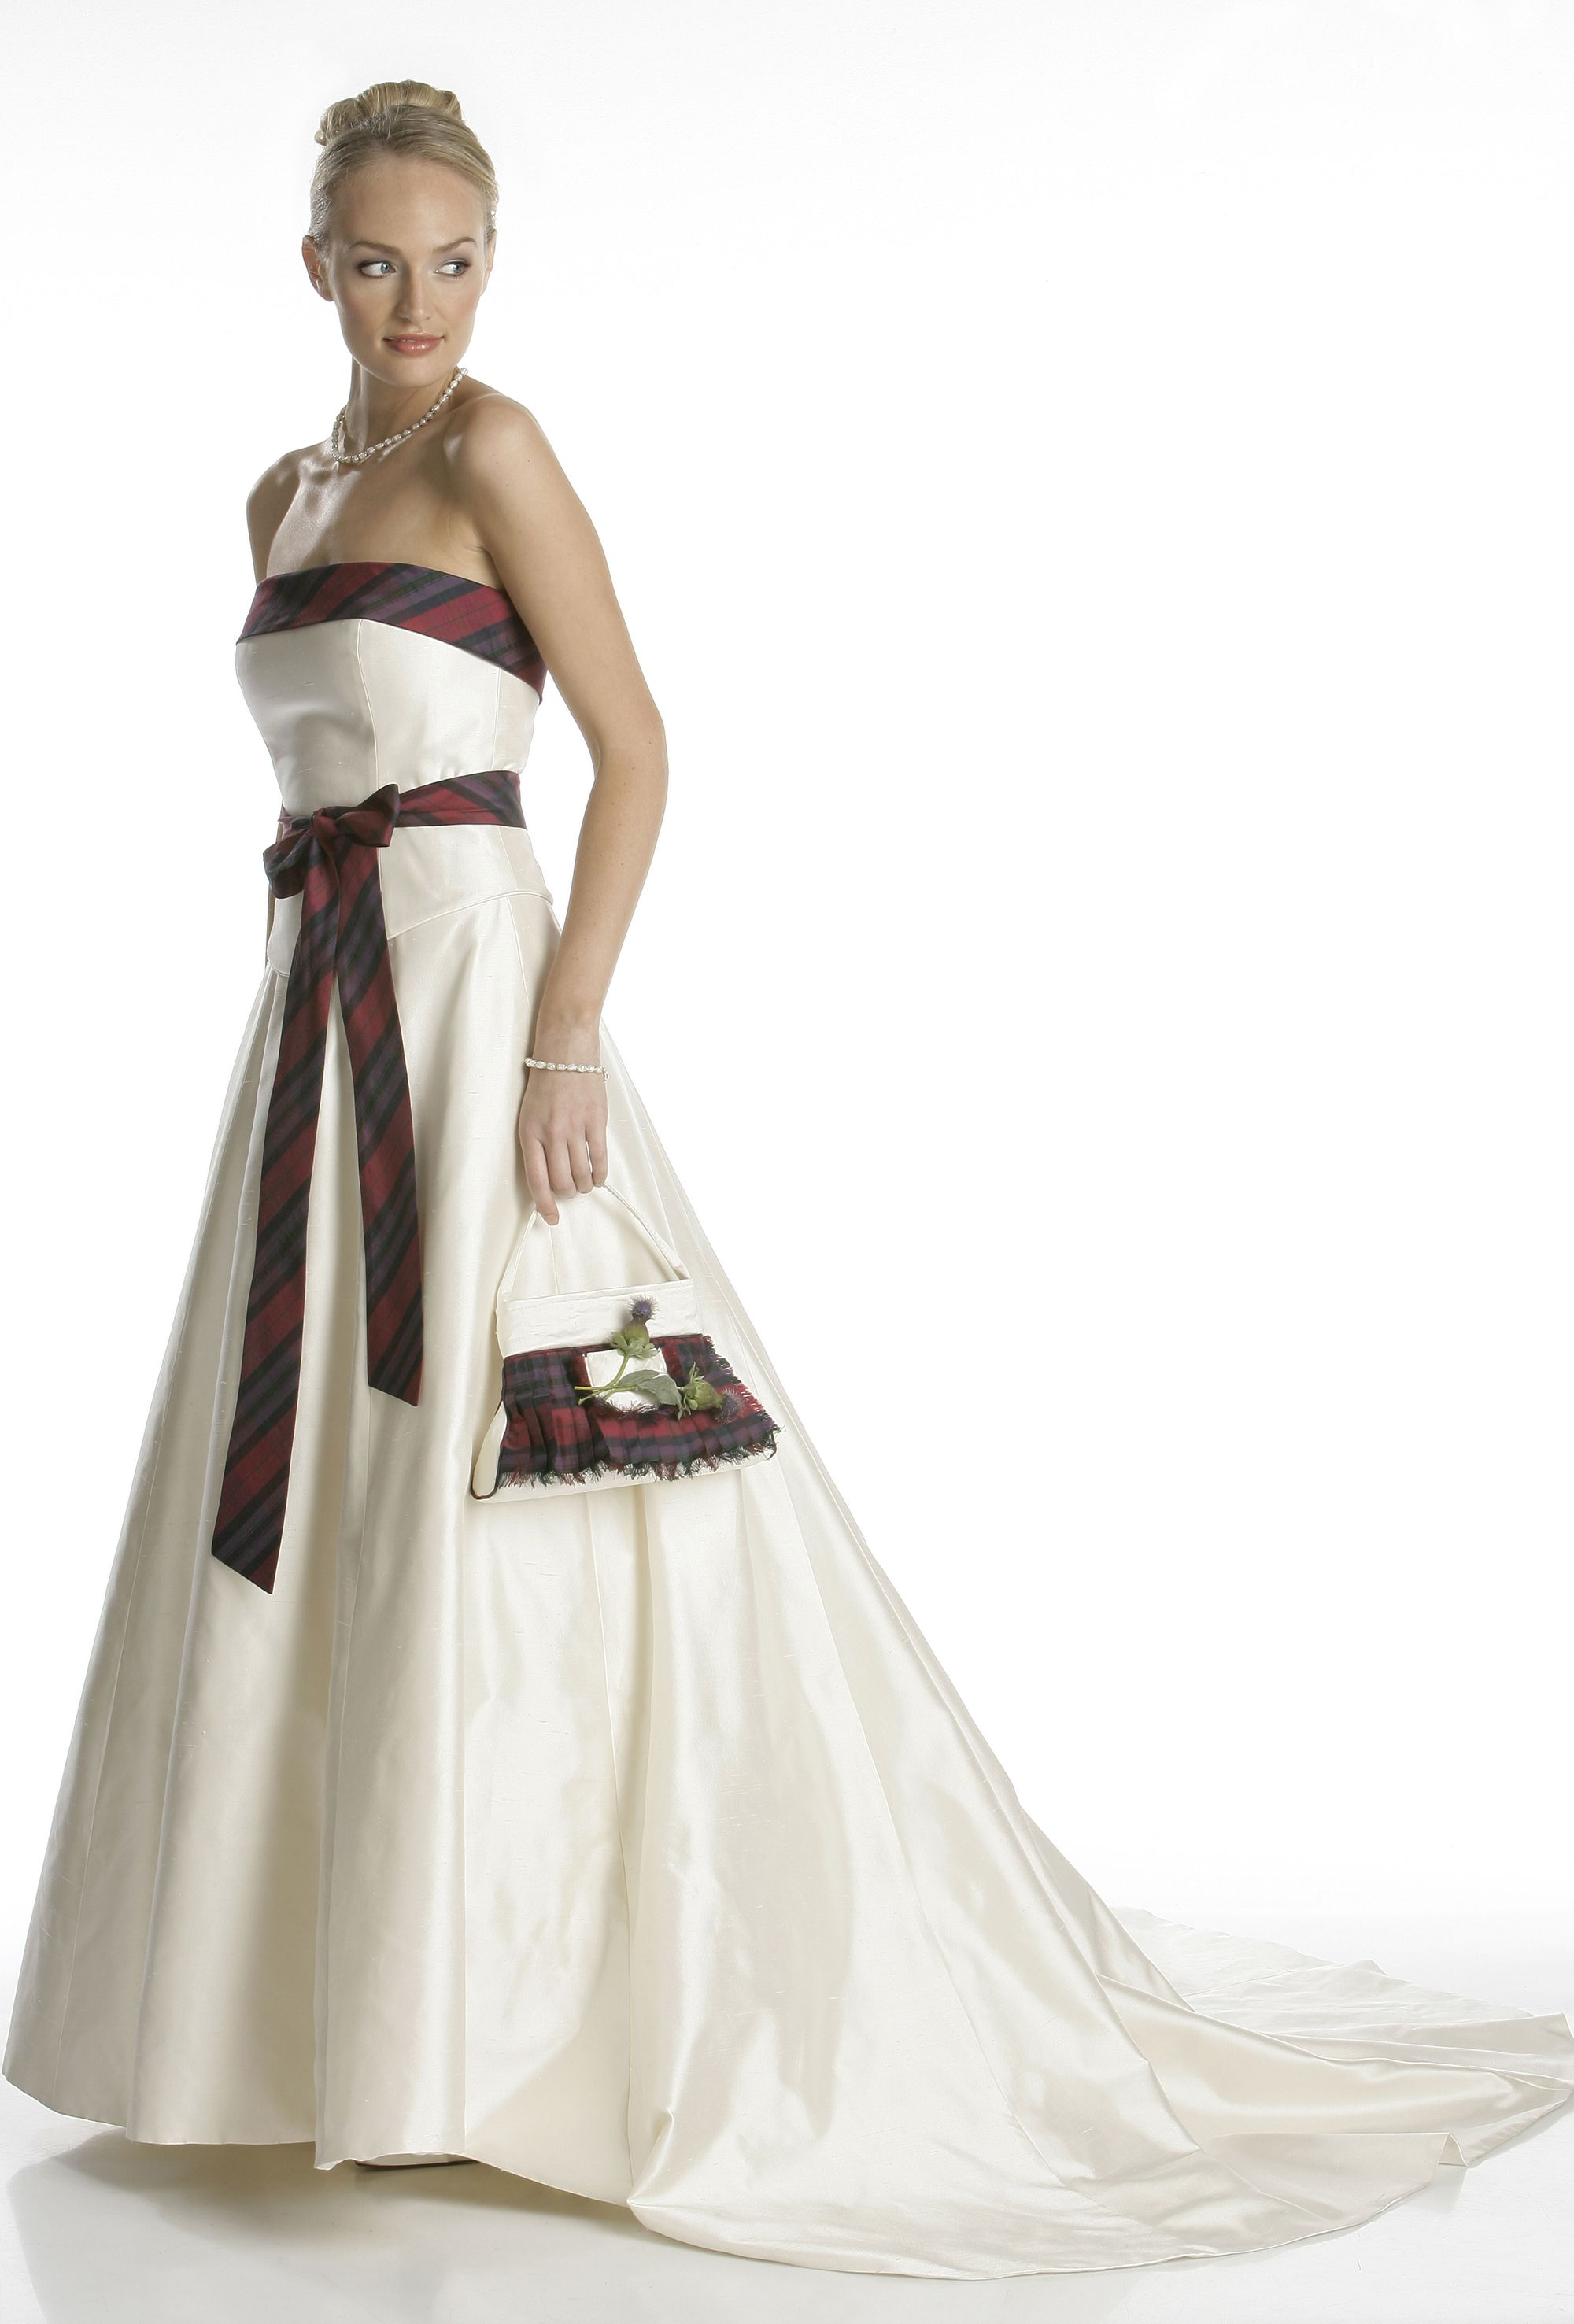 Highland wedding dress with tartan accents | Wedding Outfits ...